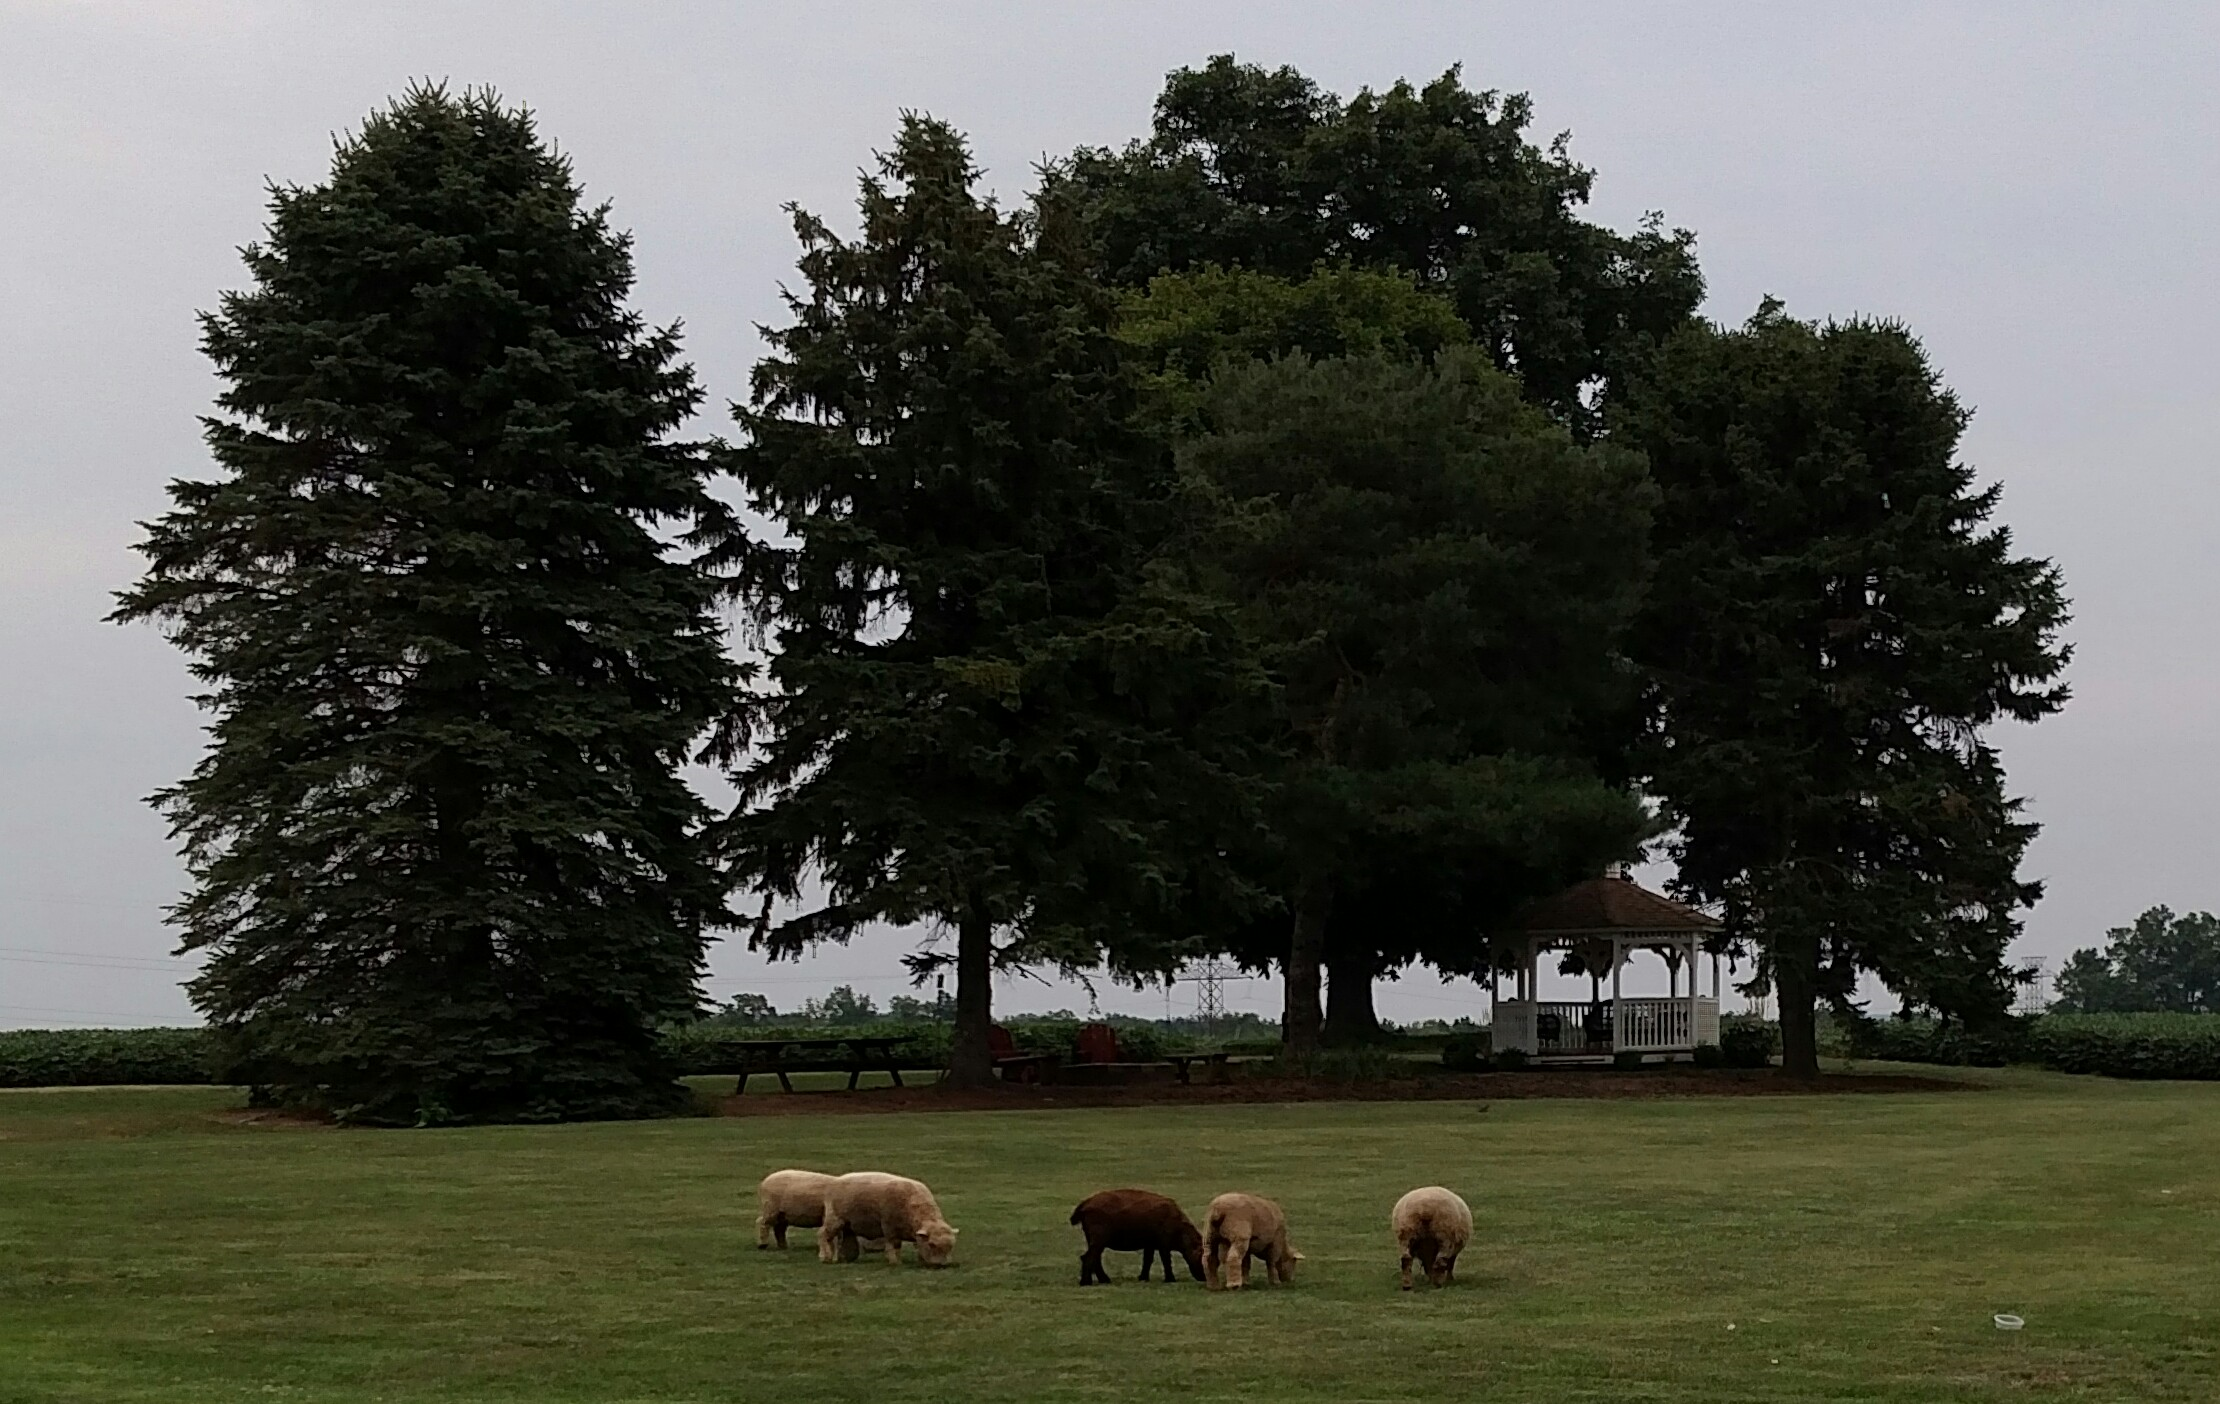 sheep grazing 4.png?1480533225117